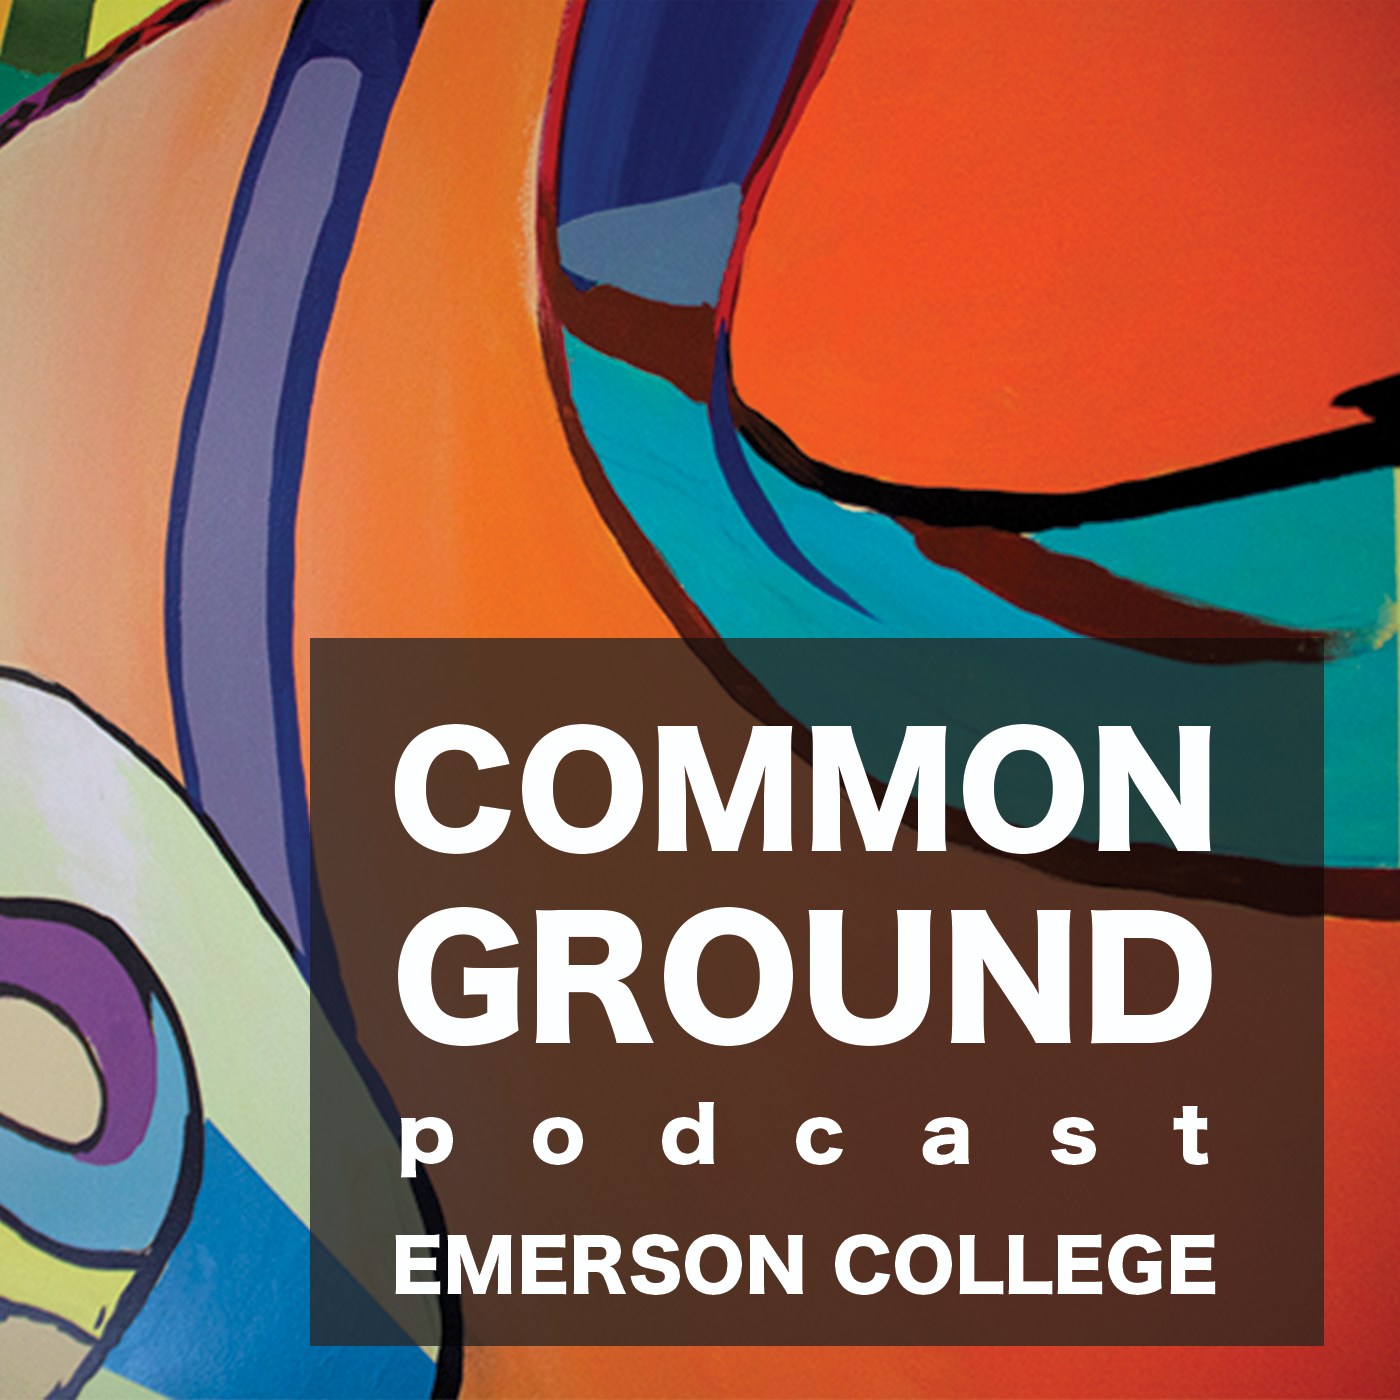 CommonGround@Emerson College